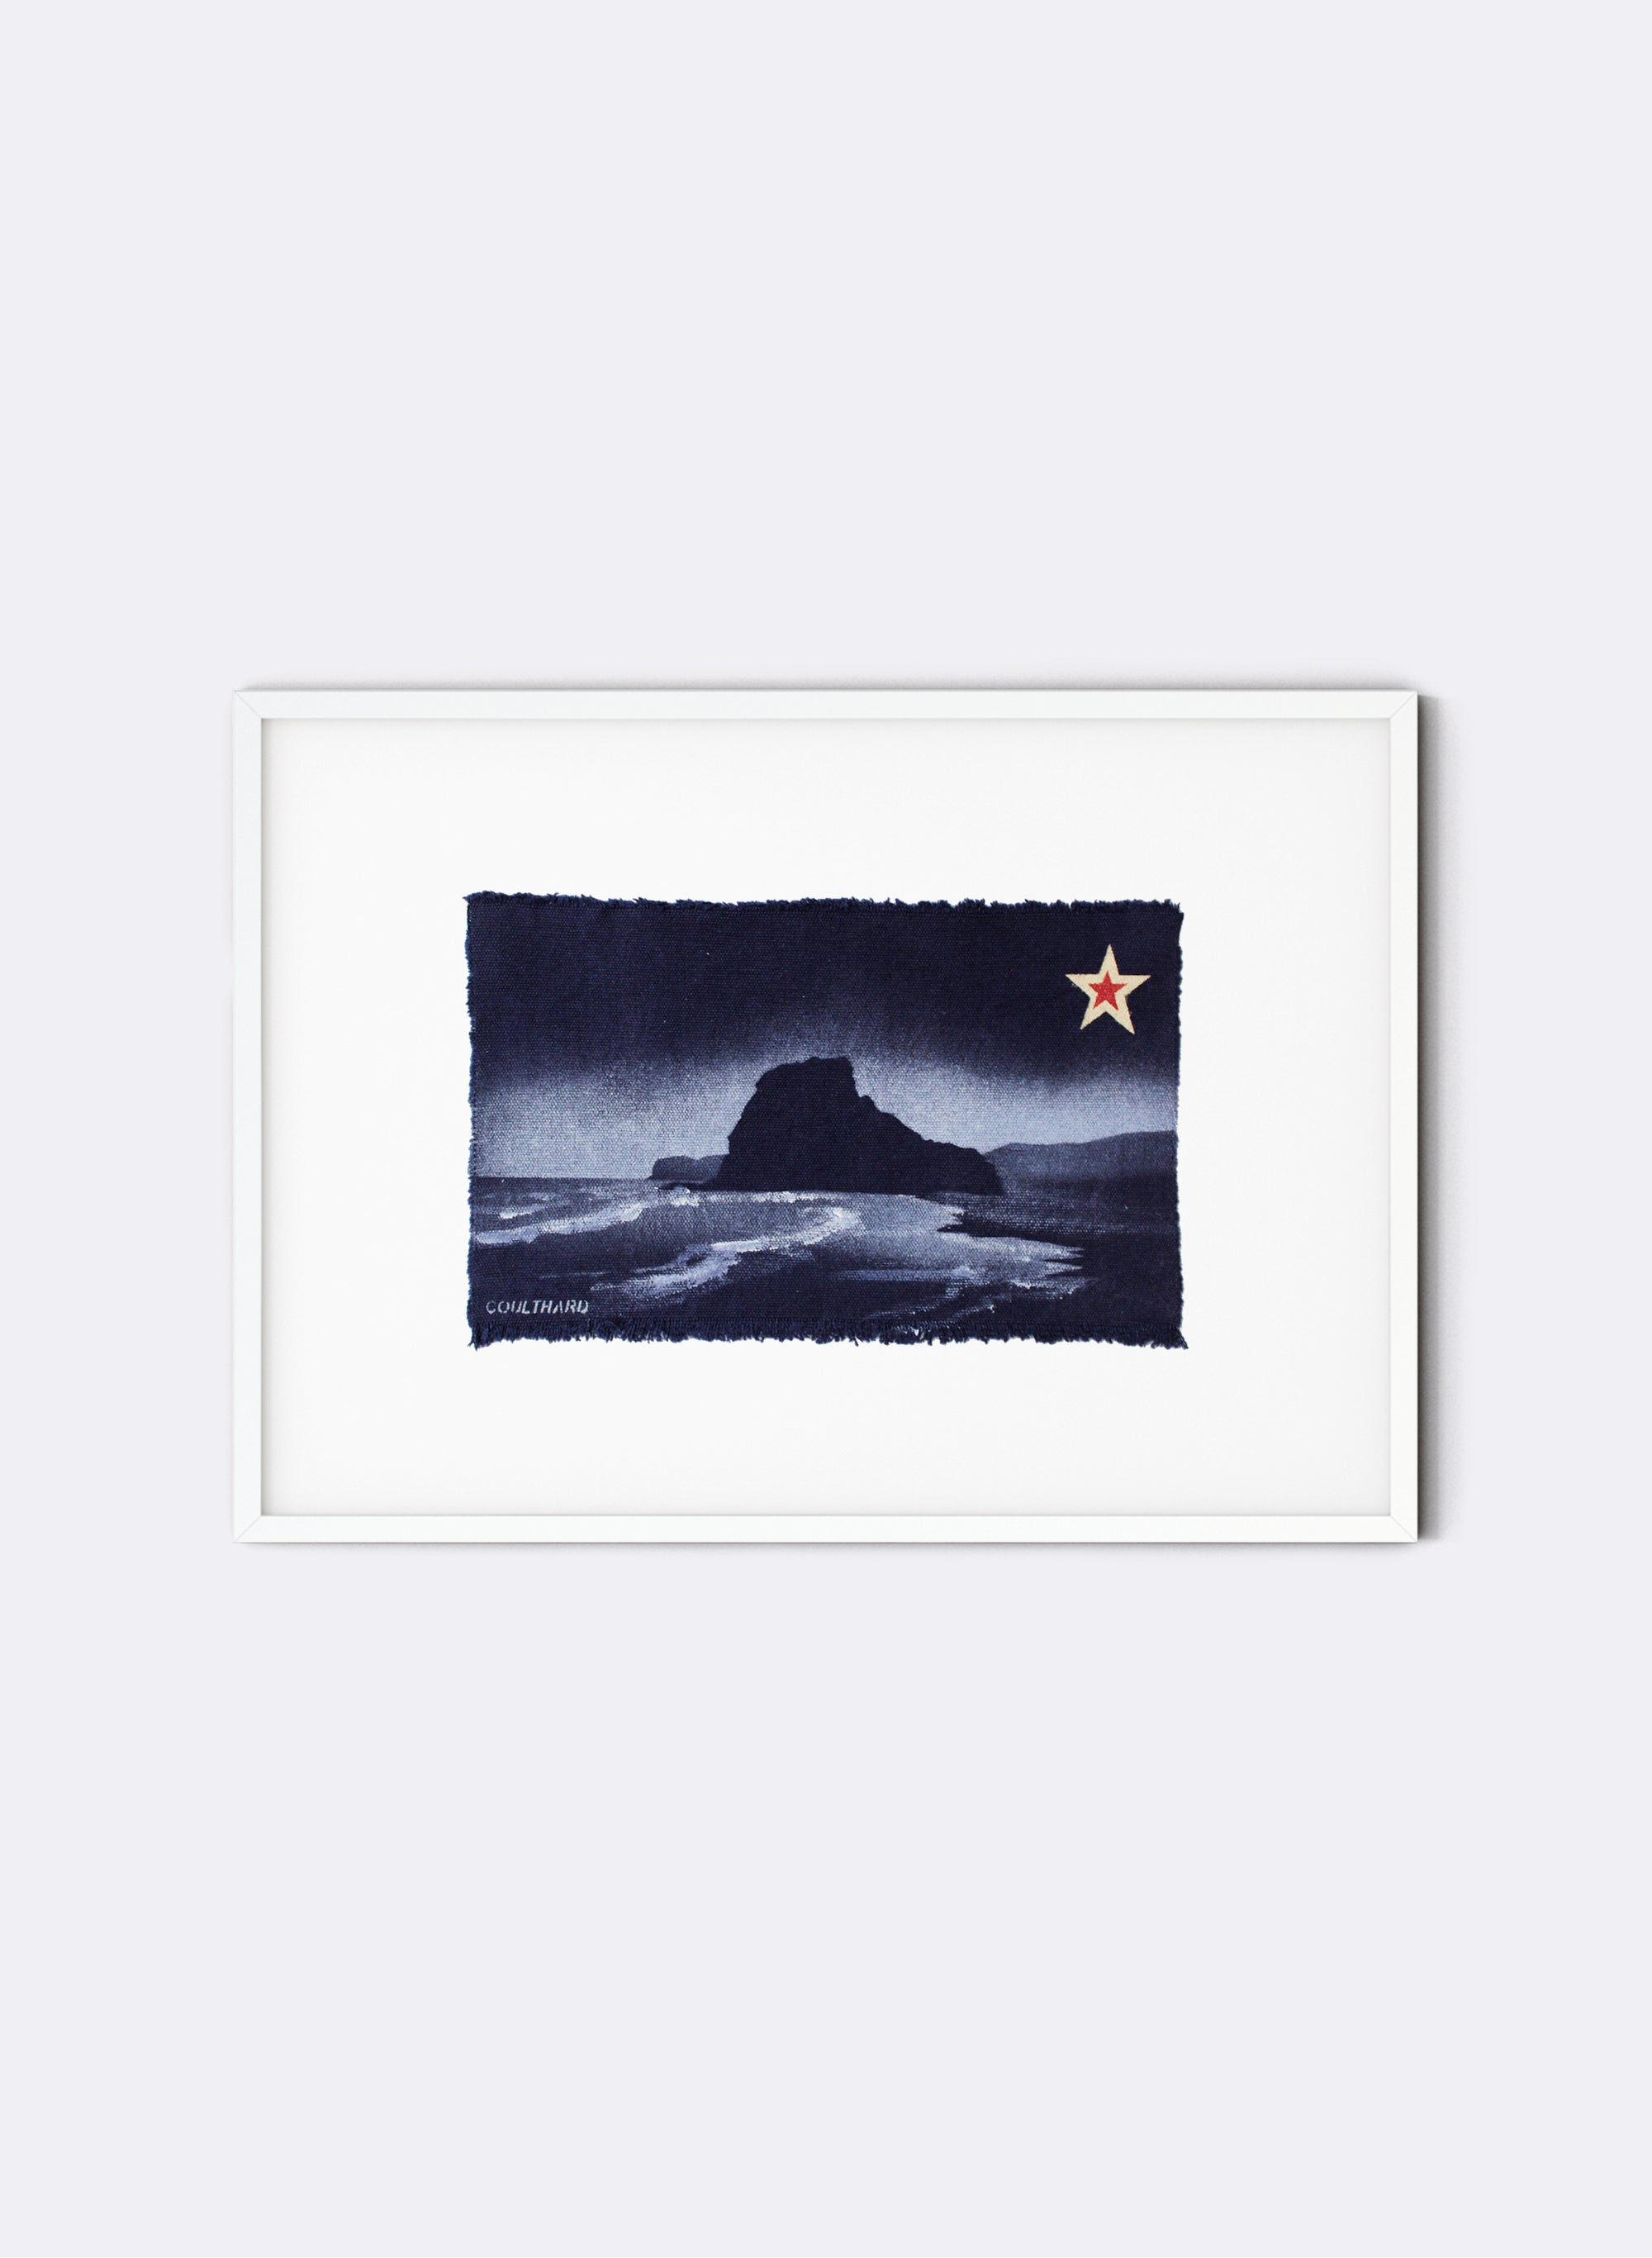 Piha, Lion Rock - Postcard Artwork - Navy